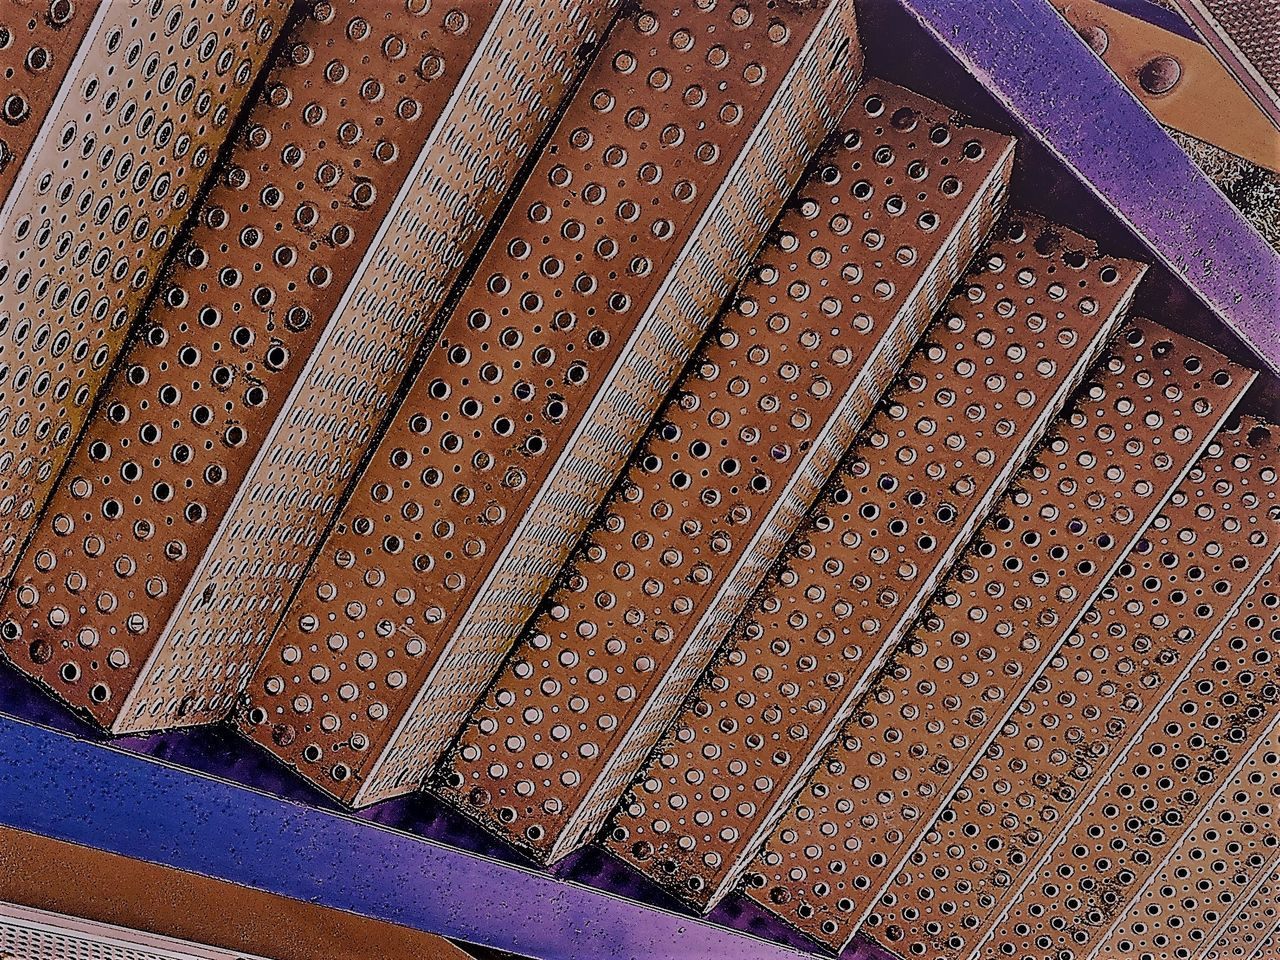 Angles And Lines Steps And Staircases Metal Staircase Metal Art Technology Copper Tones